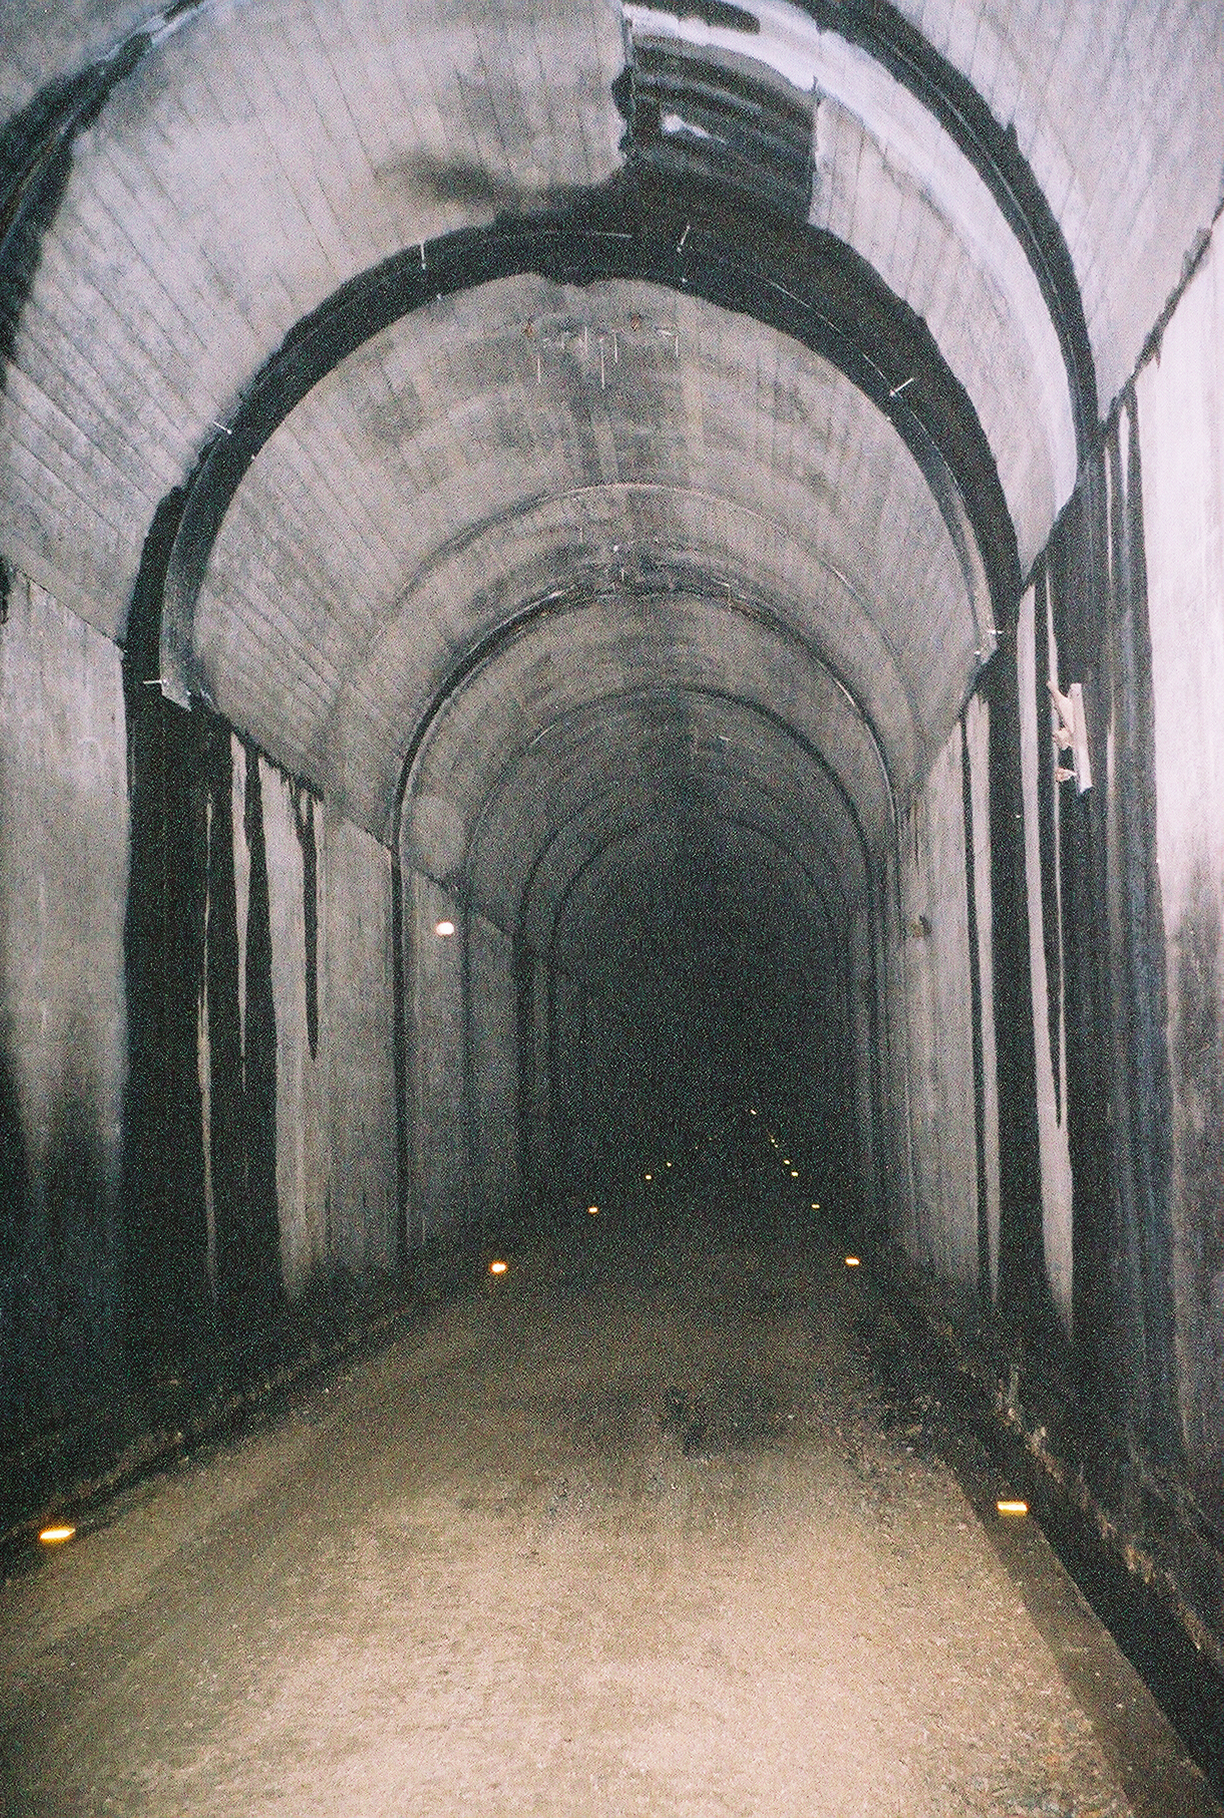 Inside a Dark Tunnel